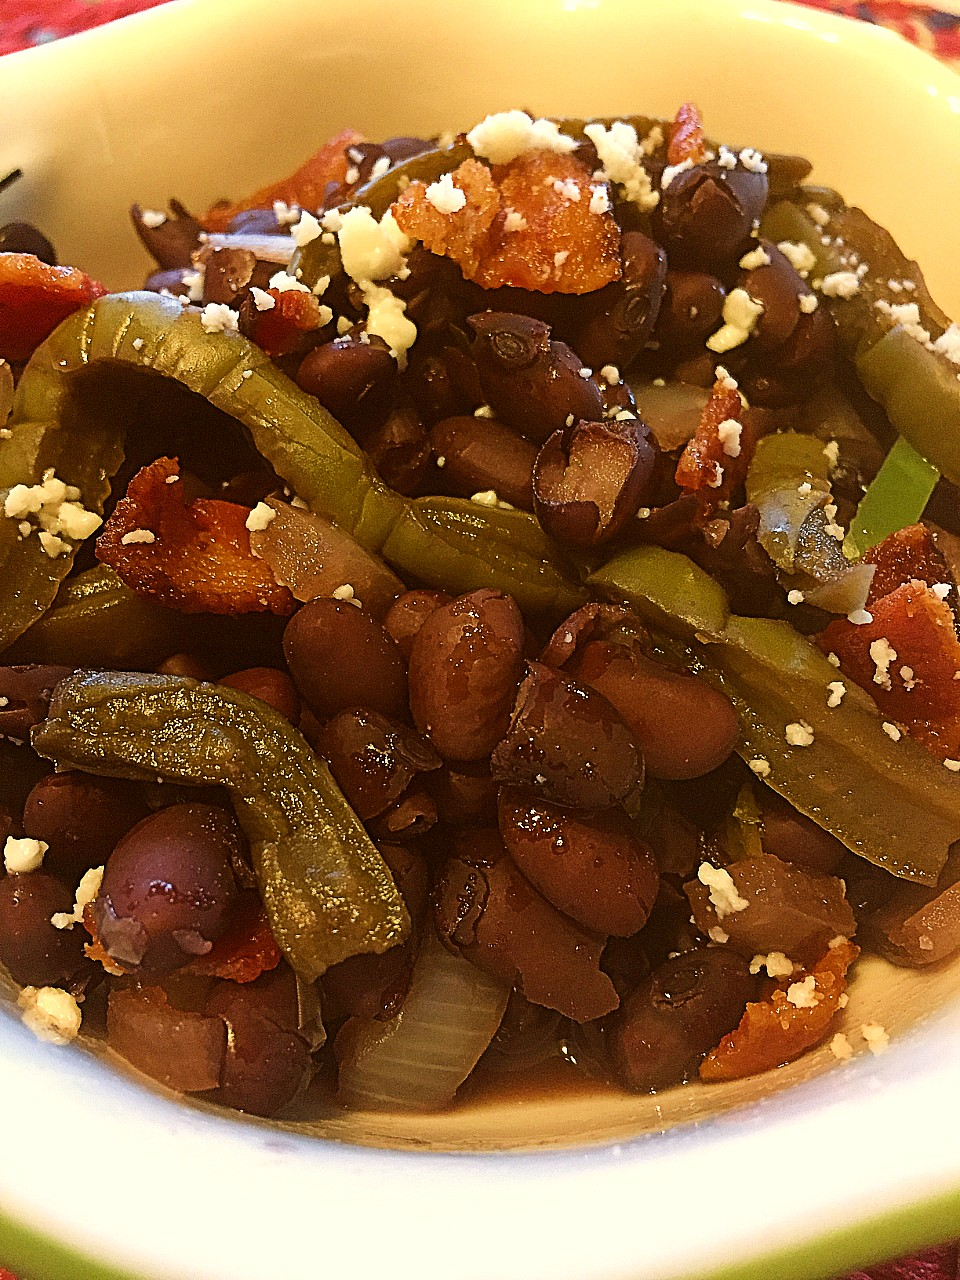 Black Beans with Nopal Cactus topped with Cotija cheese